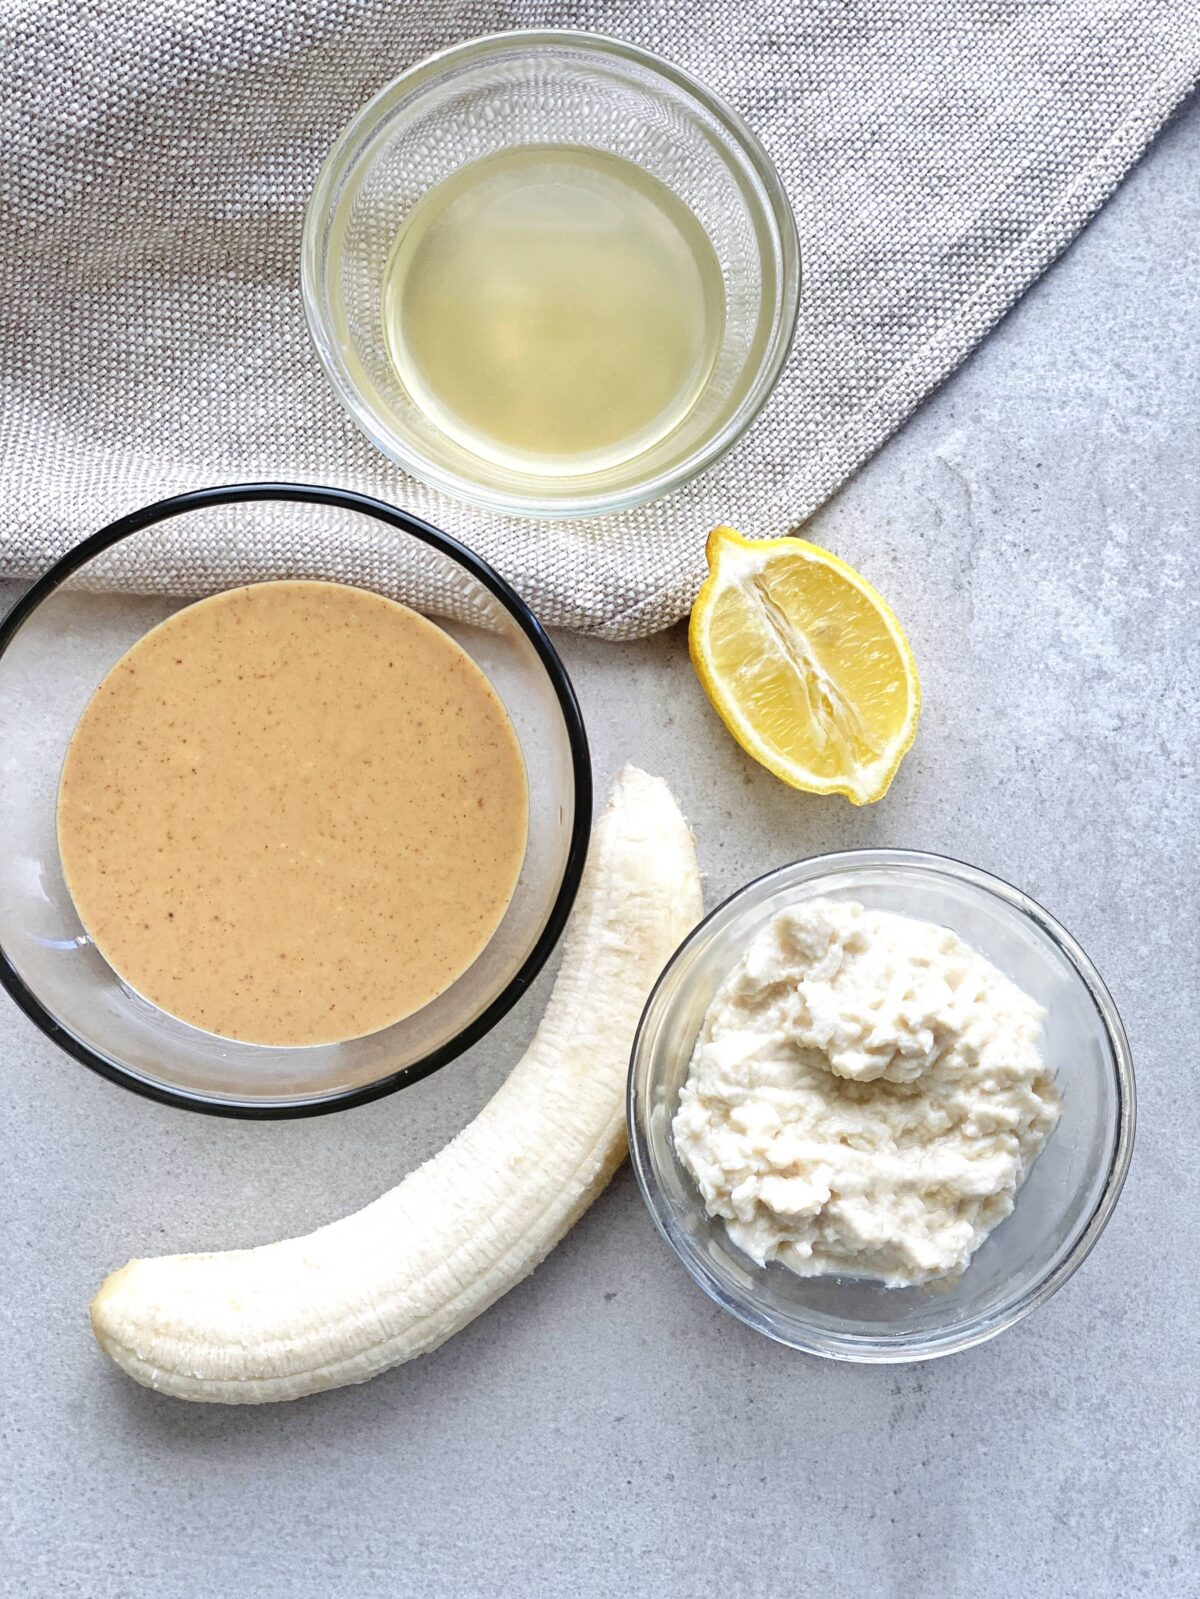 Ingredients for peanut butter banana mousse